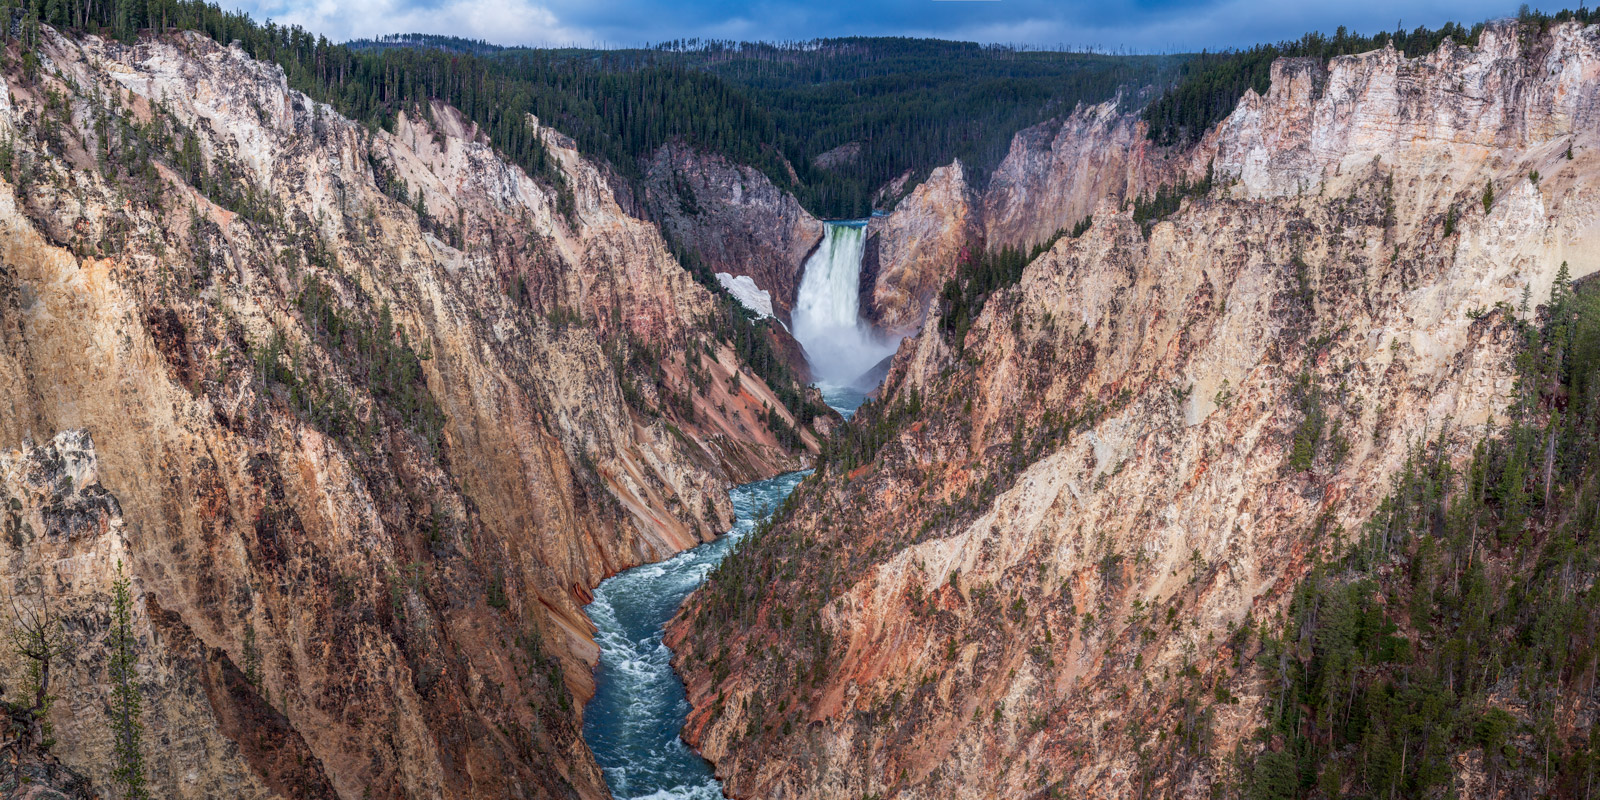 Wyoming, Yellowstone, Canyon, Falls, Grand Canyon, limited edition, photograph, fine art, landscape, photo